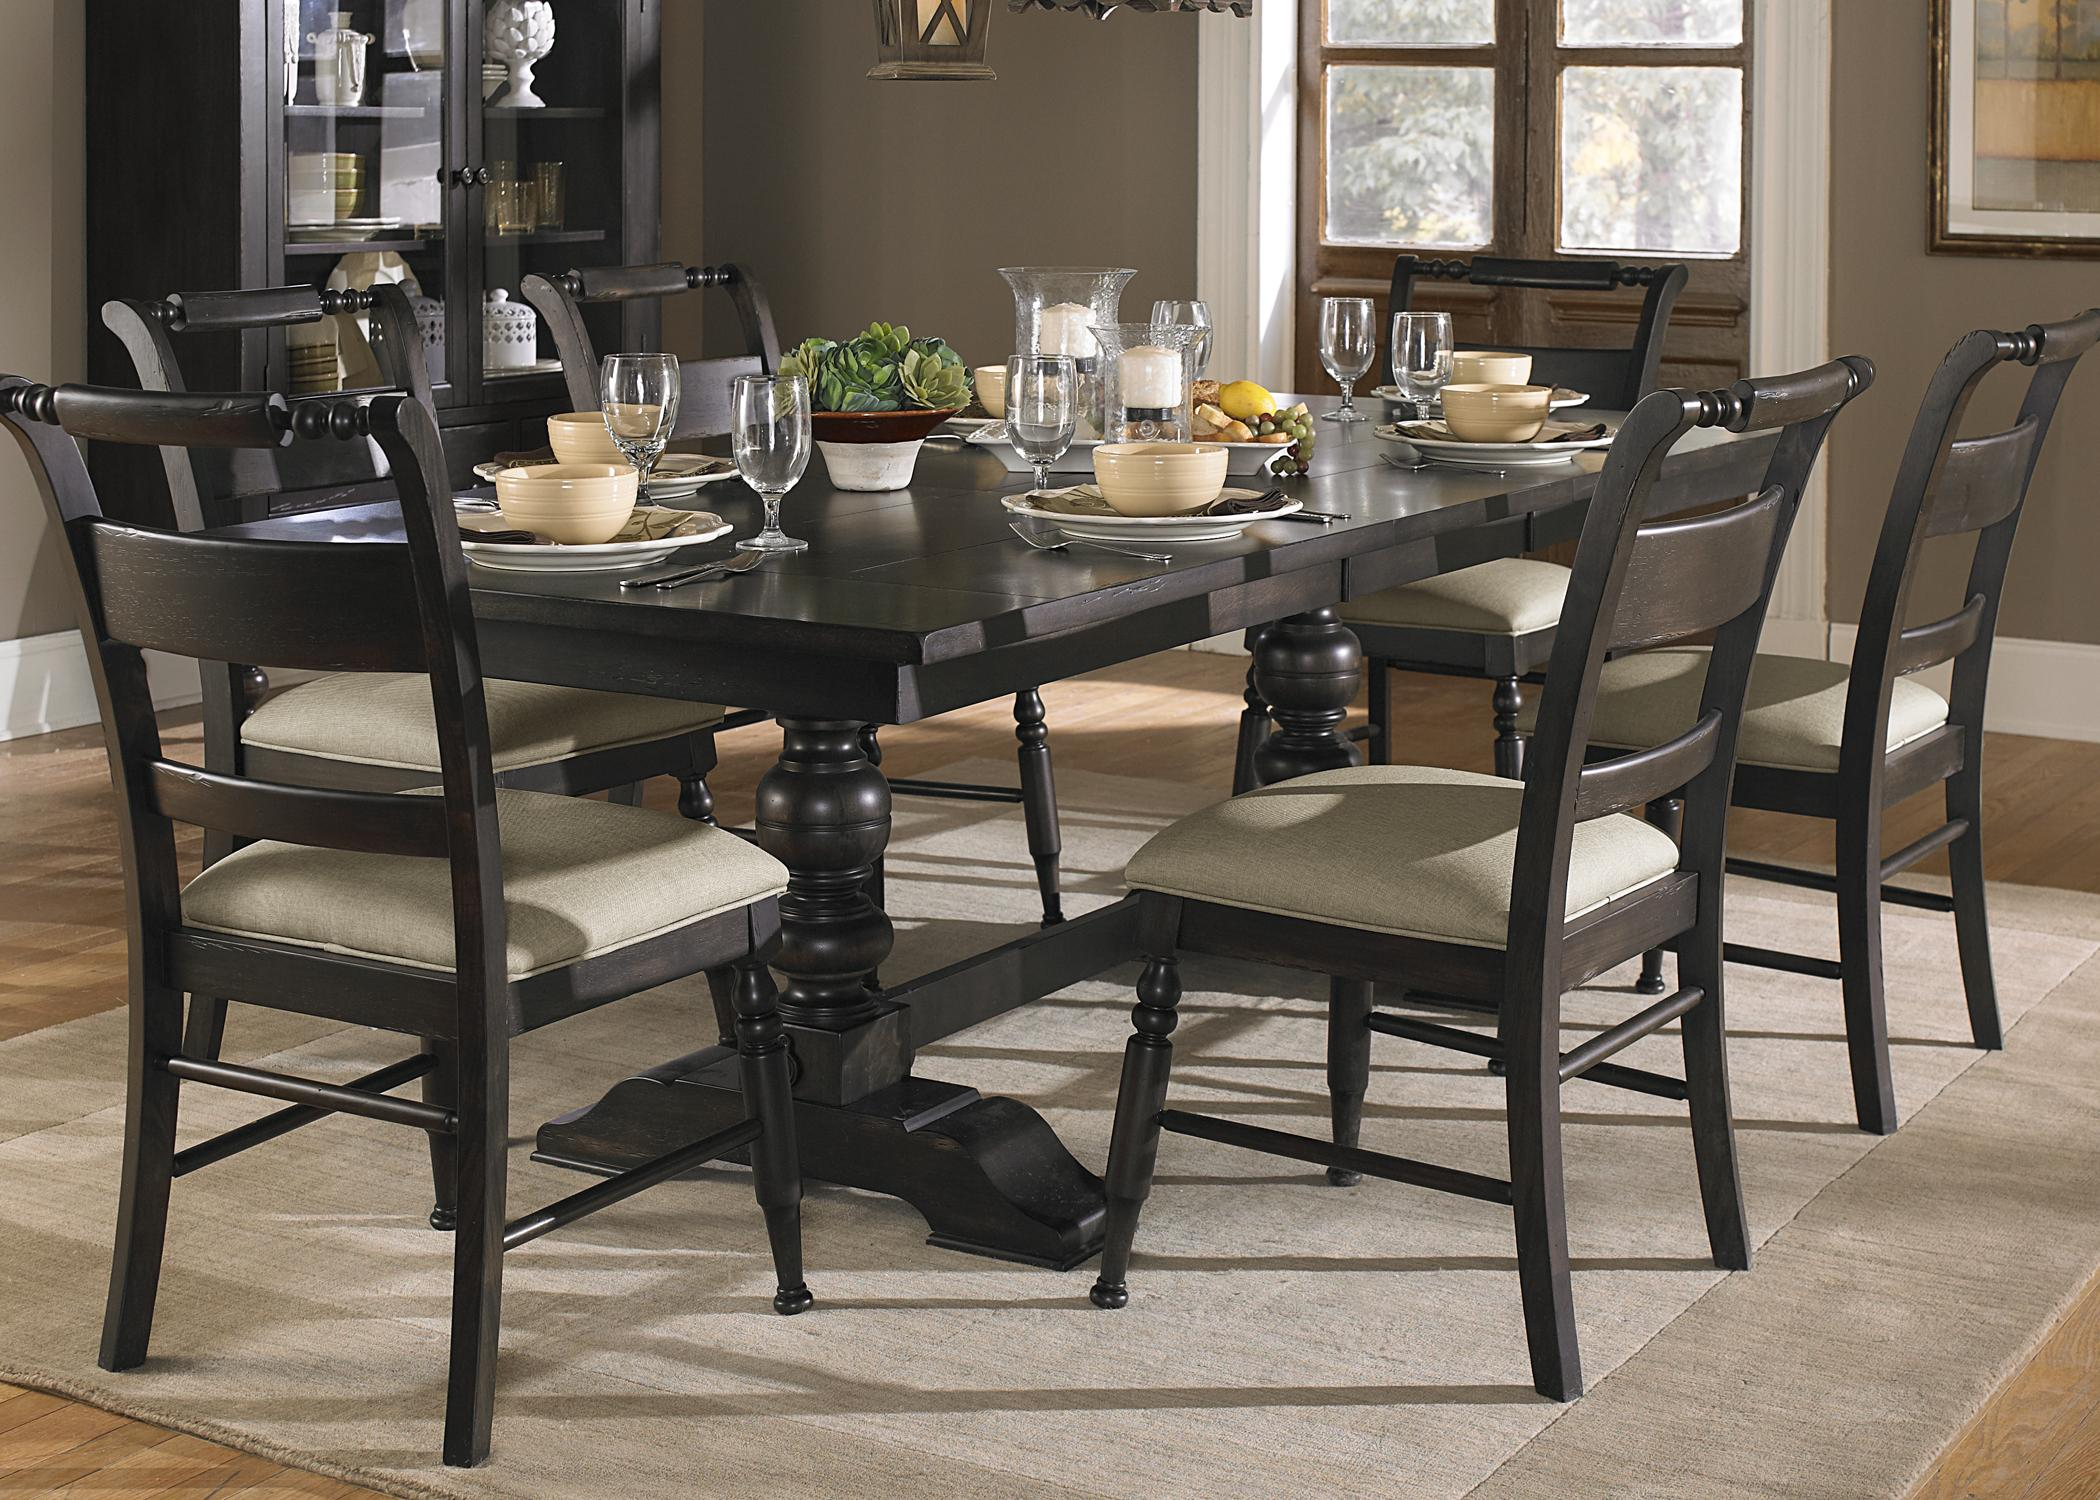 Dining Room Table Set Simple 7 Piece Trestle Dining Room Table Setliberty Furniture  Wolf Inspiration